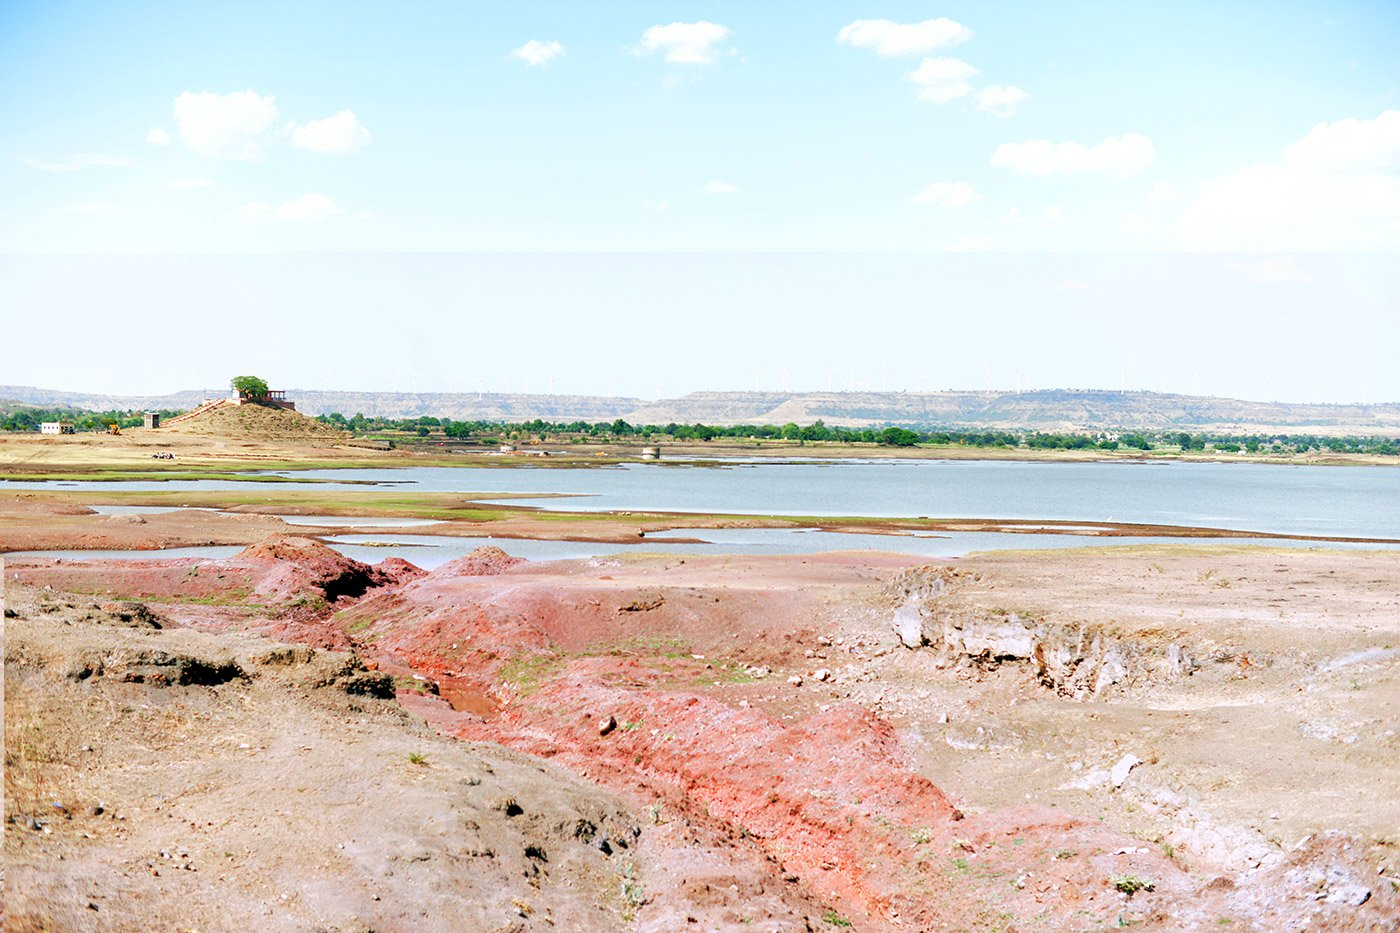 Dried up lake